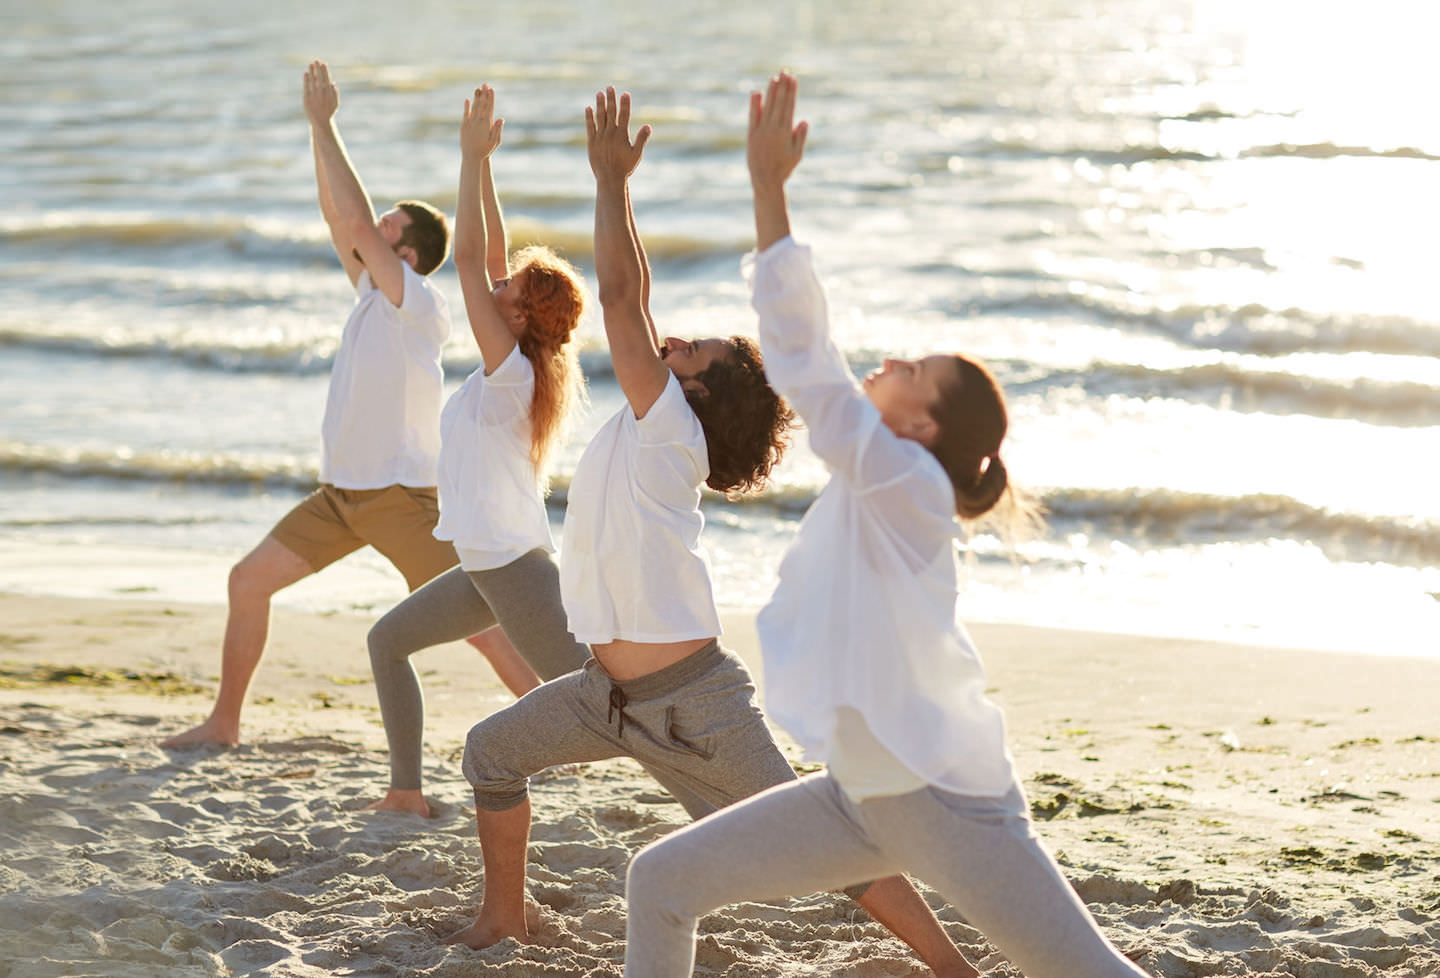 group of people making yoga exercises on beach retreat